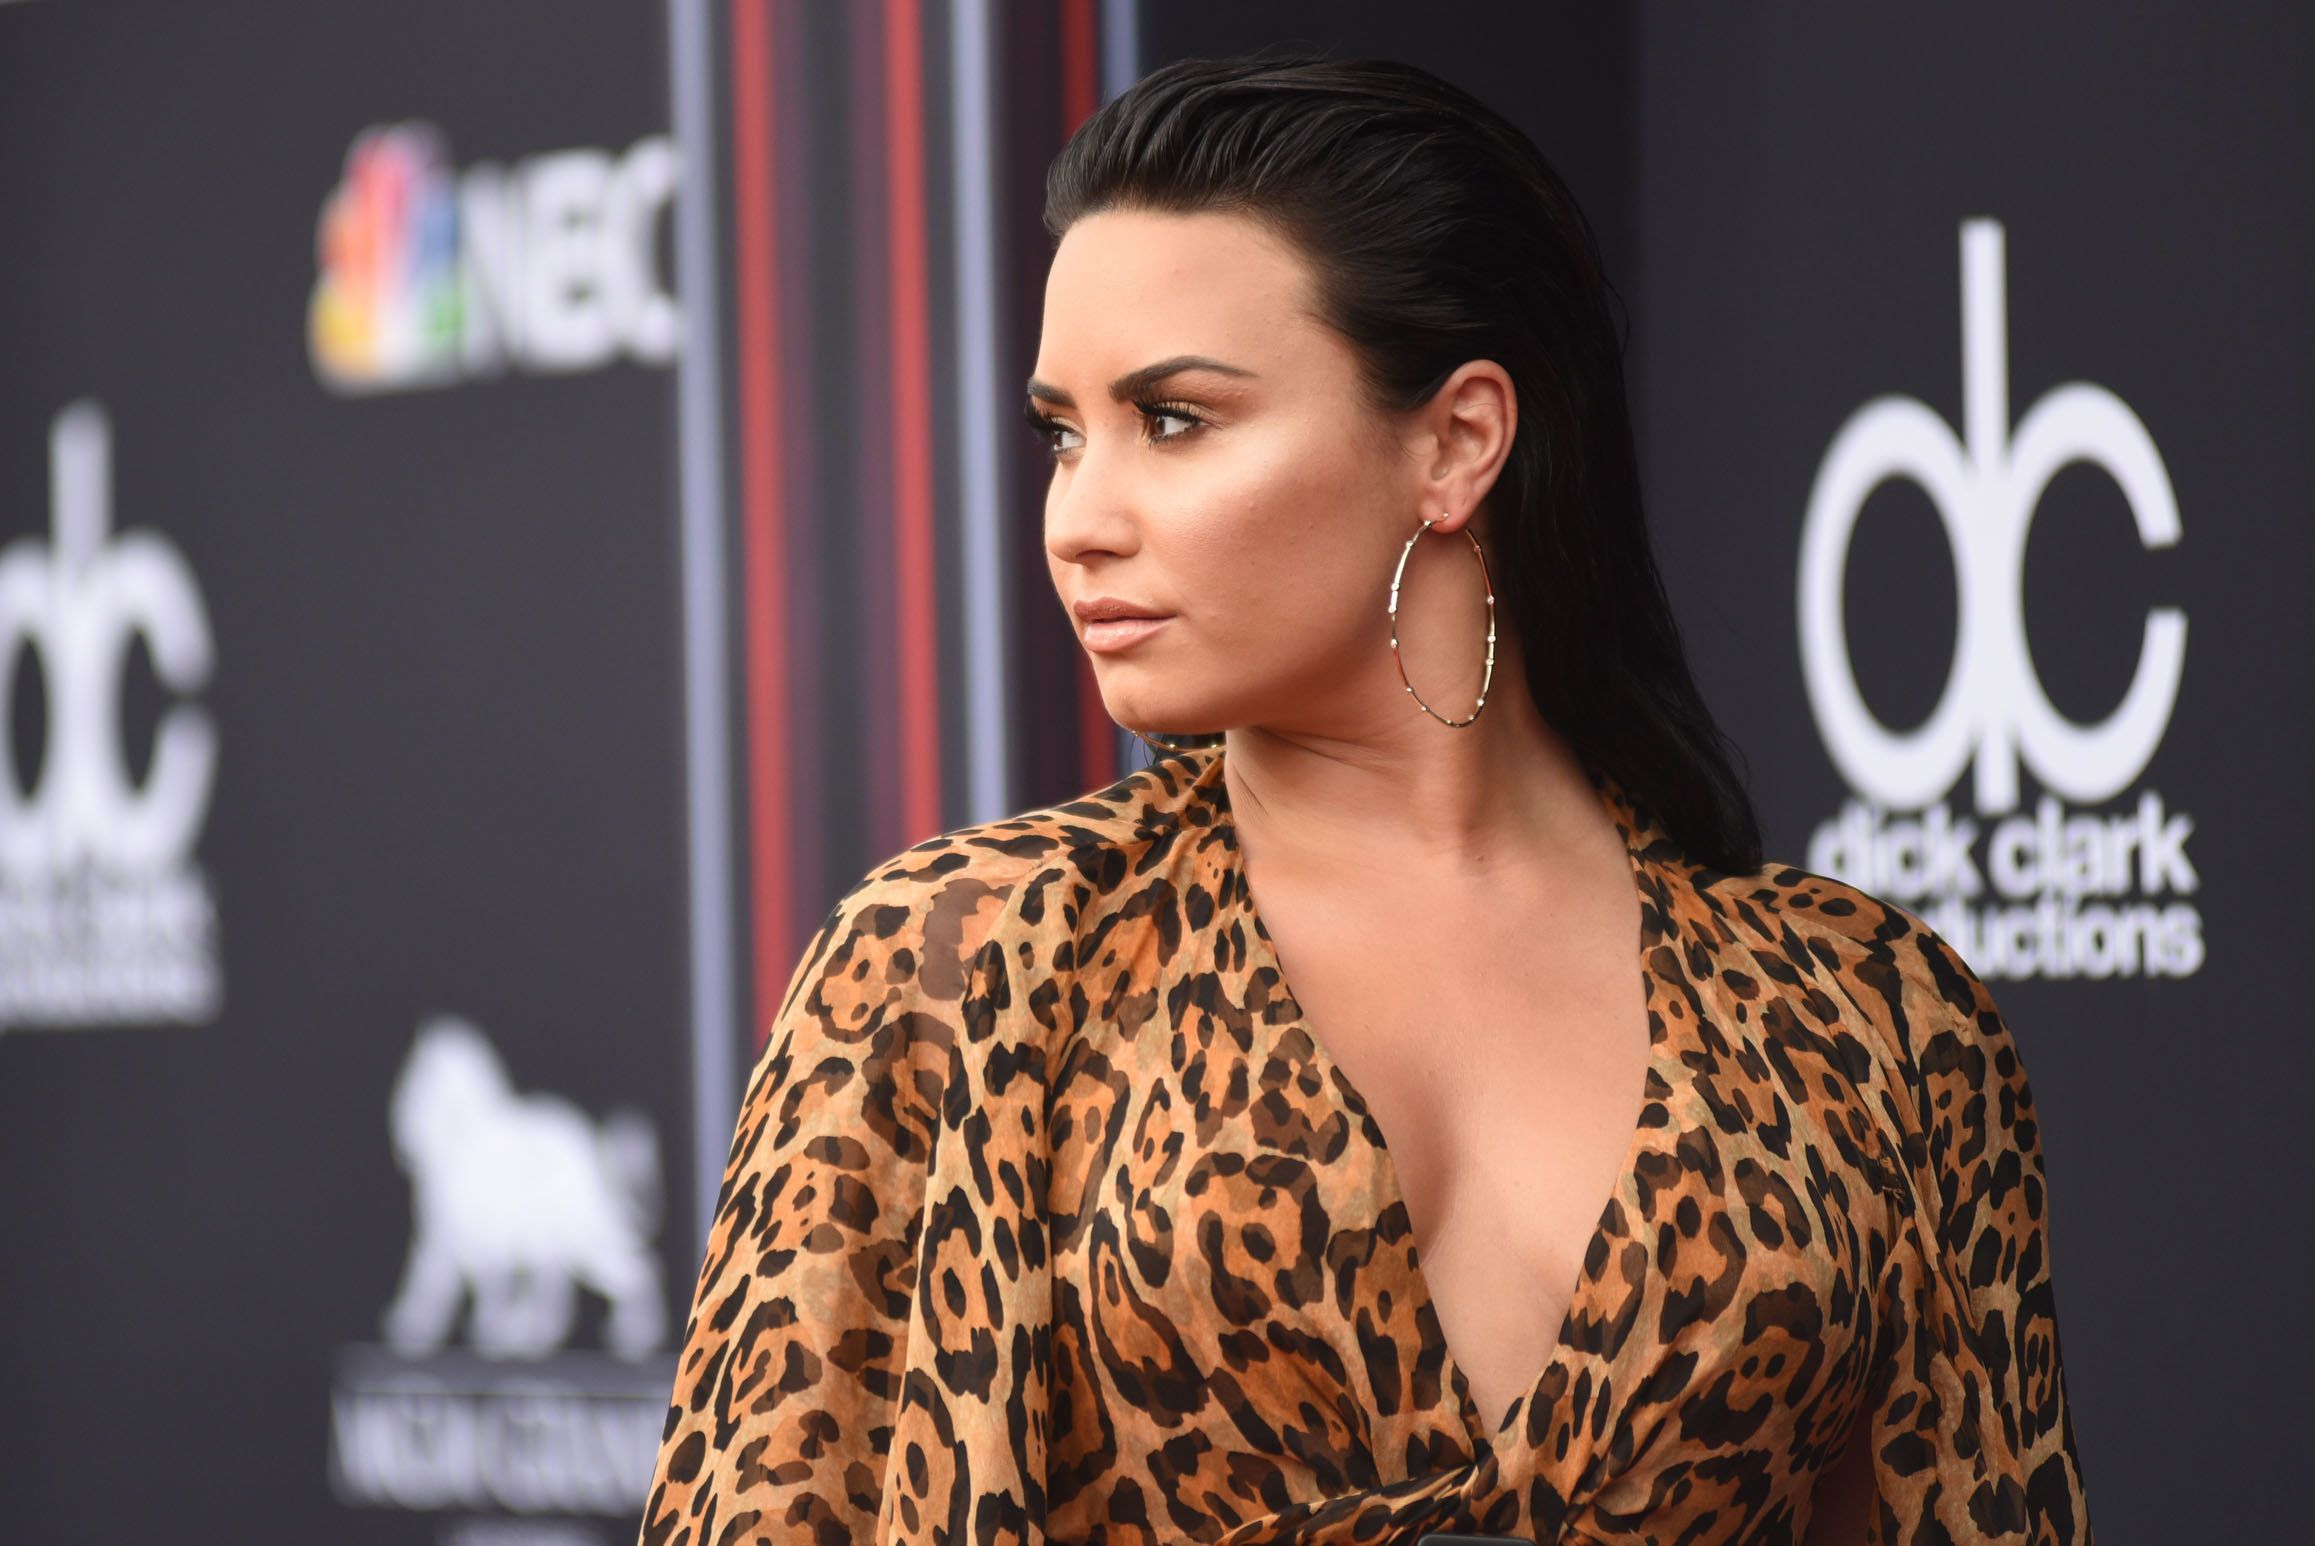 BILLBOARD MUSIC AWARDS --  Red Carpet Arrivals -- 2018 BBMA's at the MGM Grand, Las Vegas, Nevada -- Pictured: Demi Lovato -- (Photo by: Brian Friedman/NBC/NBCU Photo Bank via Getty Images)